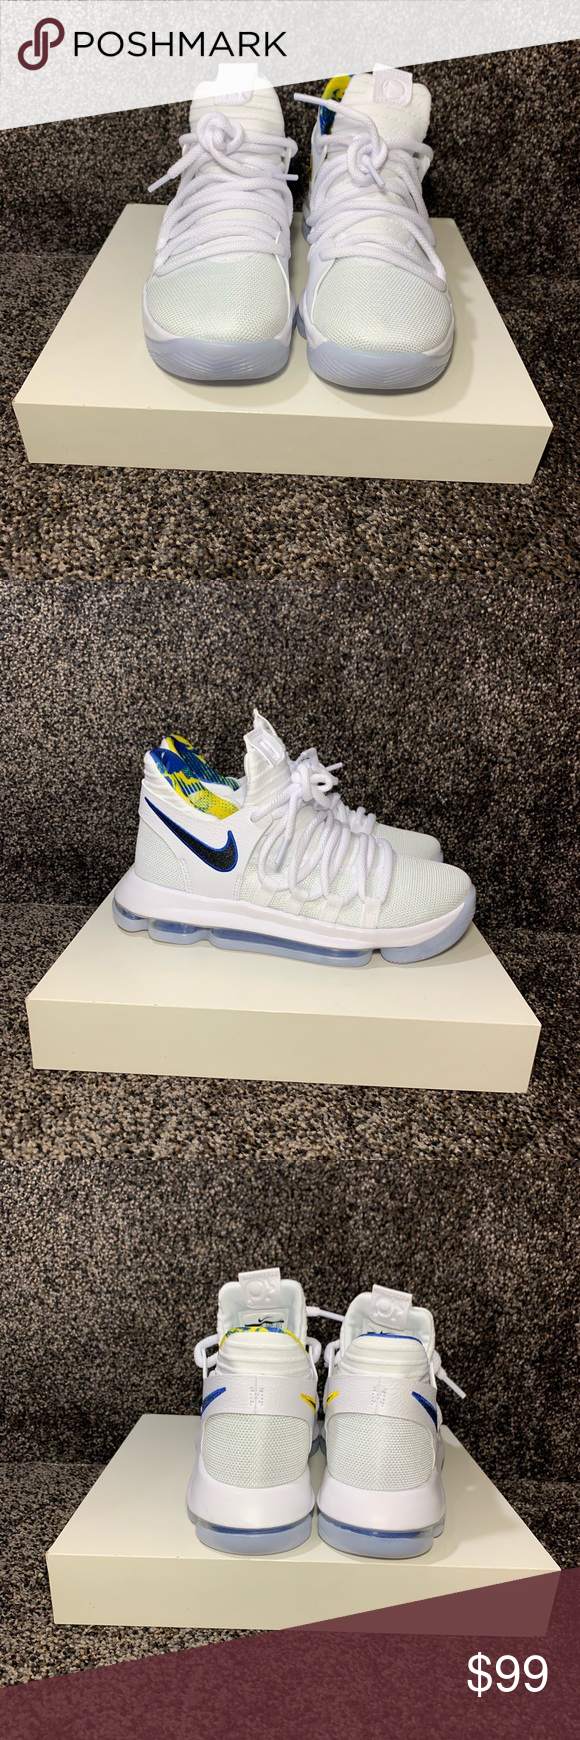 san francisco 9816e 23e65 NIKE ZOOM KD-10 size 5Y PRODUCT INFORMATION Nike KD 10 Limited Edition NBA  Golden